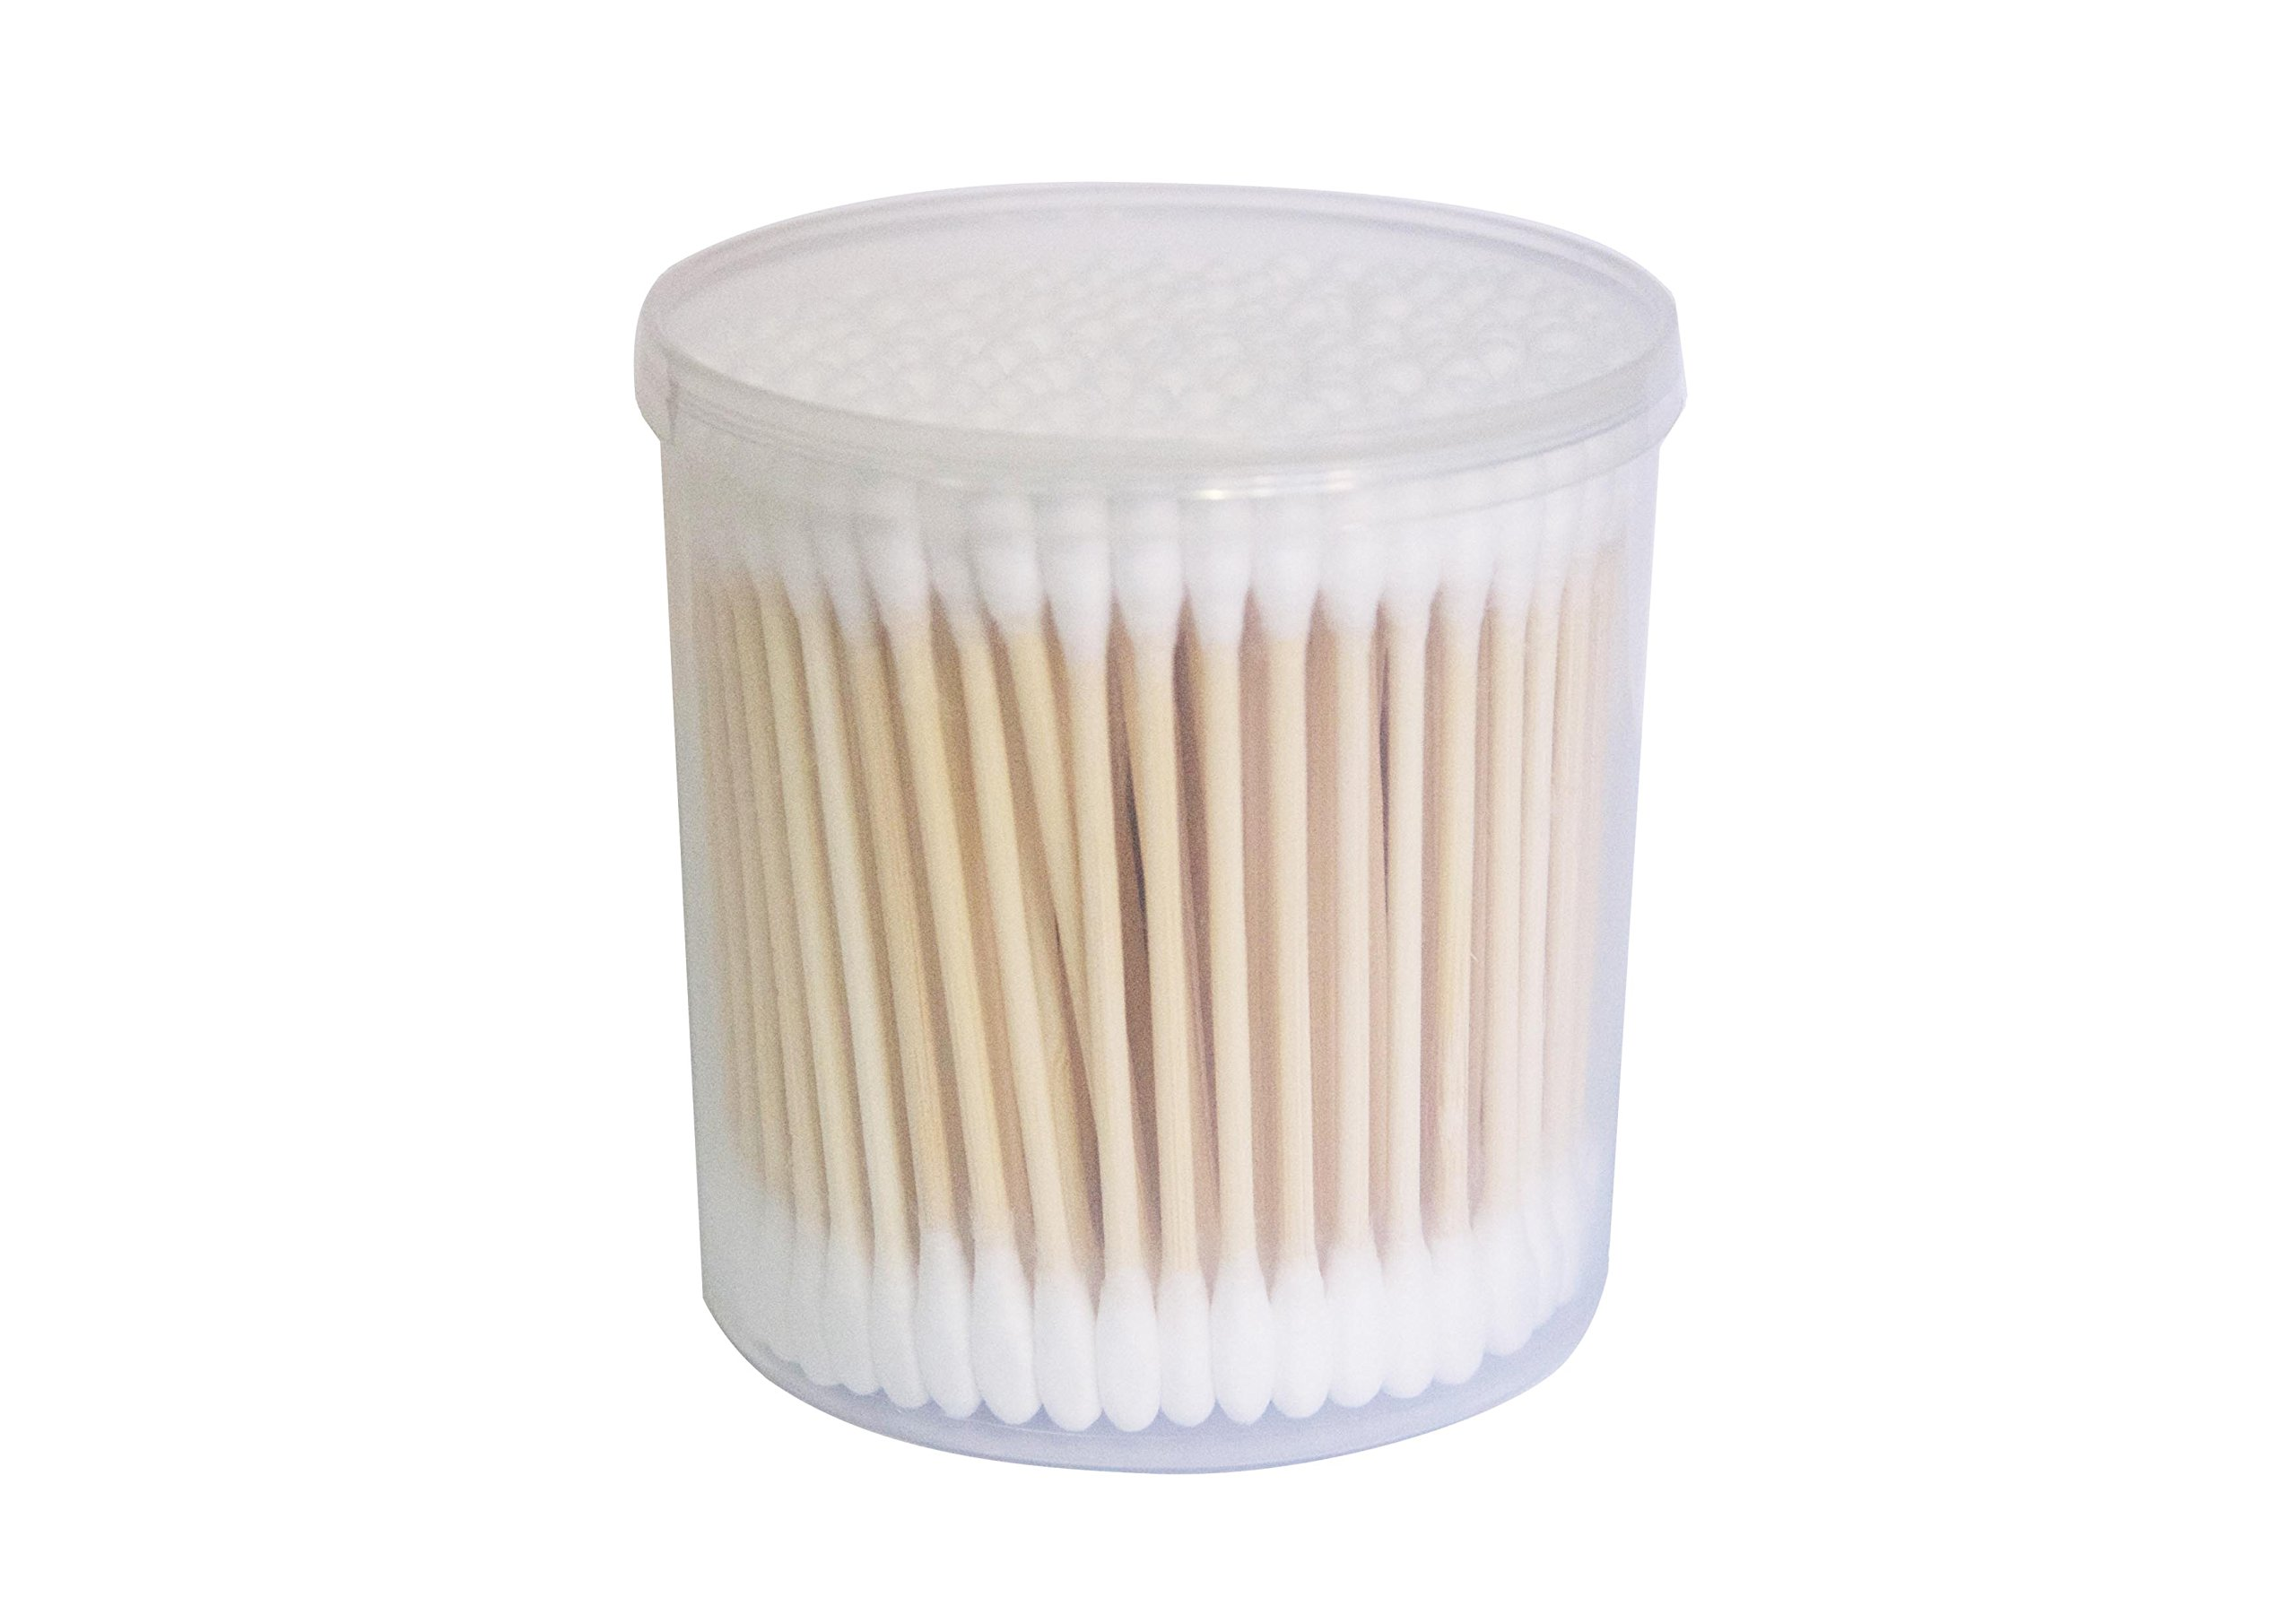 Bamboo Stick Cotton Swab 1200 PCS (6 Packs) - Long-Staple Cotton - Cotton Swabs Double Tipped Cleaning Swab, high Quality Absorbent Cotton - Multi-Functional, Safe, high Absorbency and Hygiene